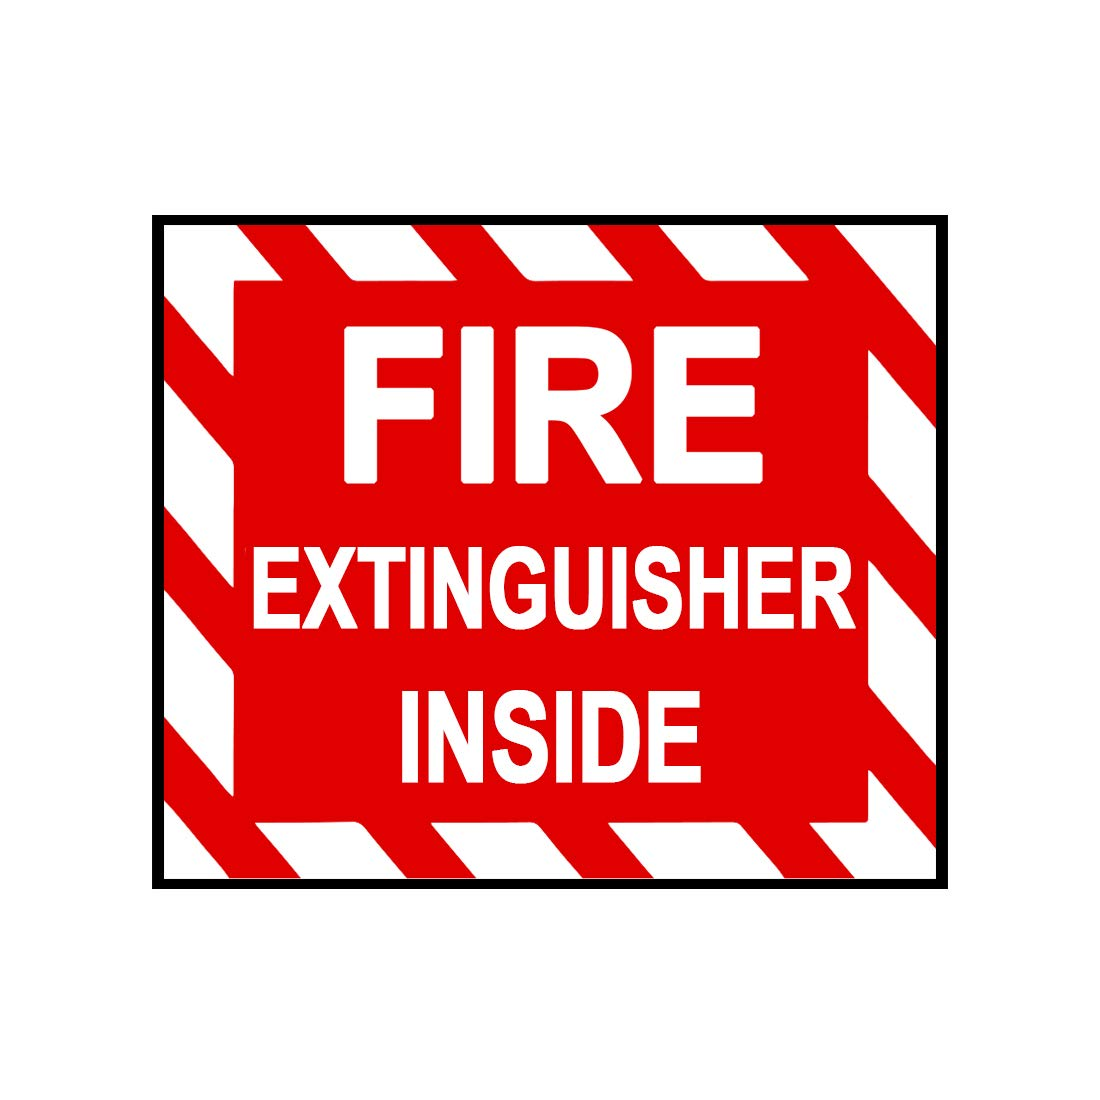 Fire Extinguisher Interior Sign Sticker Decal Notebook Car Laptop 5 x 4 Bargain Max Decals MAX-100468 Color